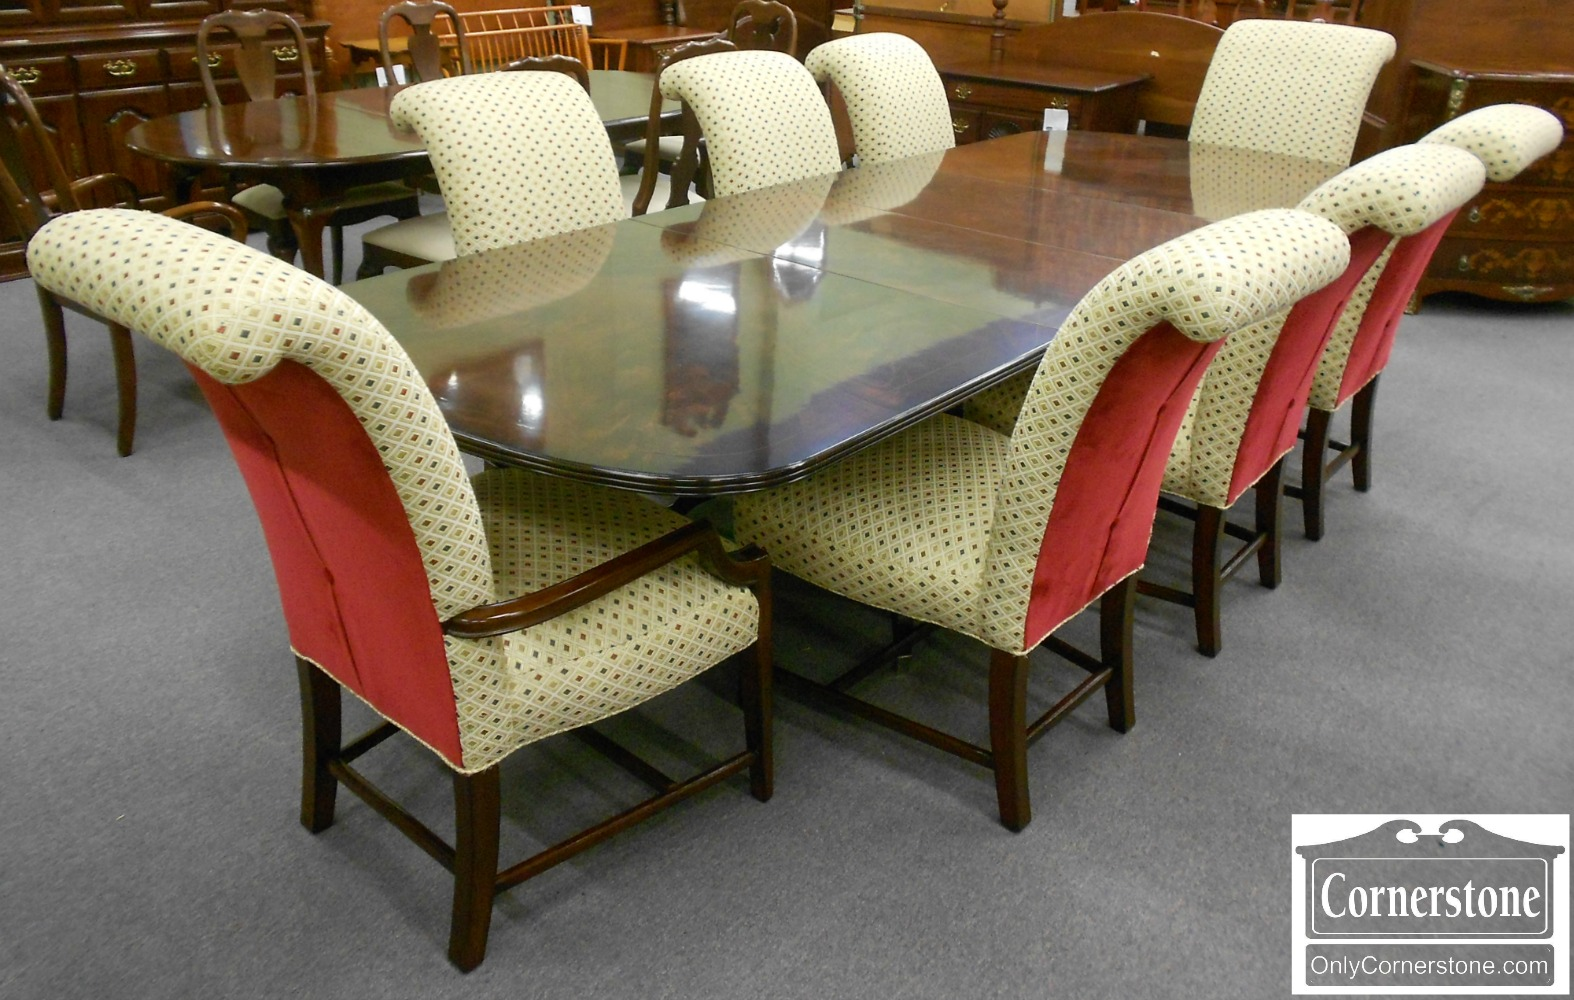 3959-866 Z PA House New Standards Fully Upholstered Dining Chairs